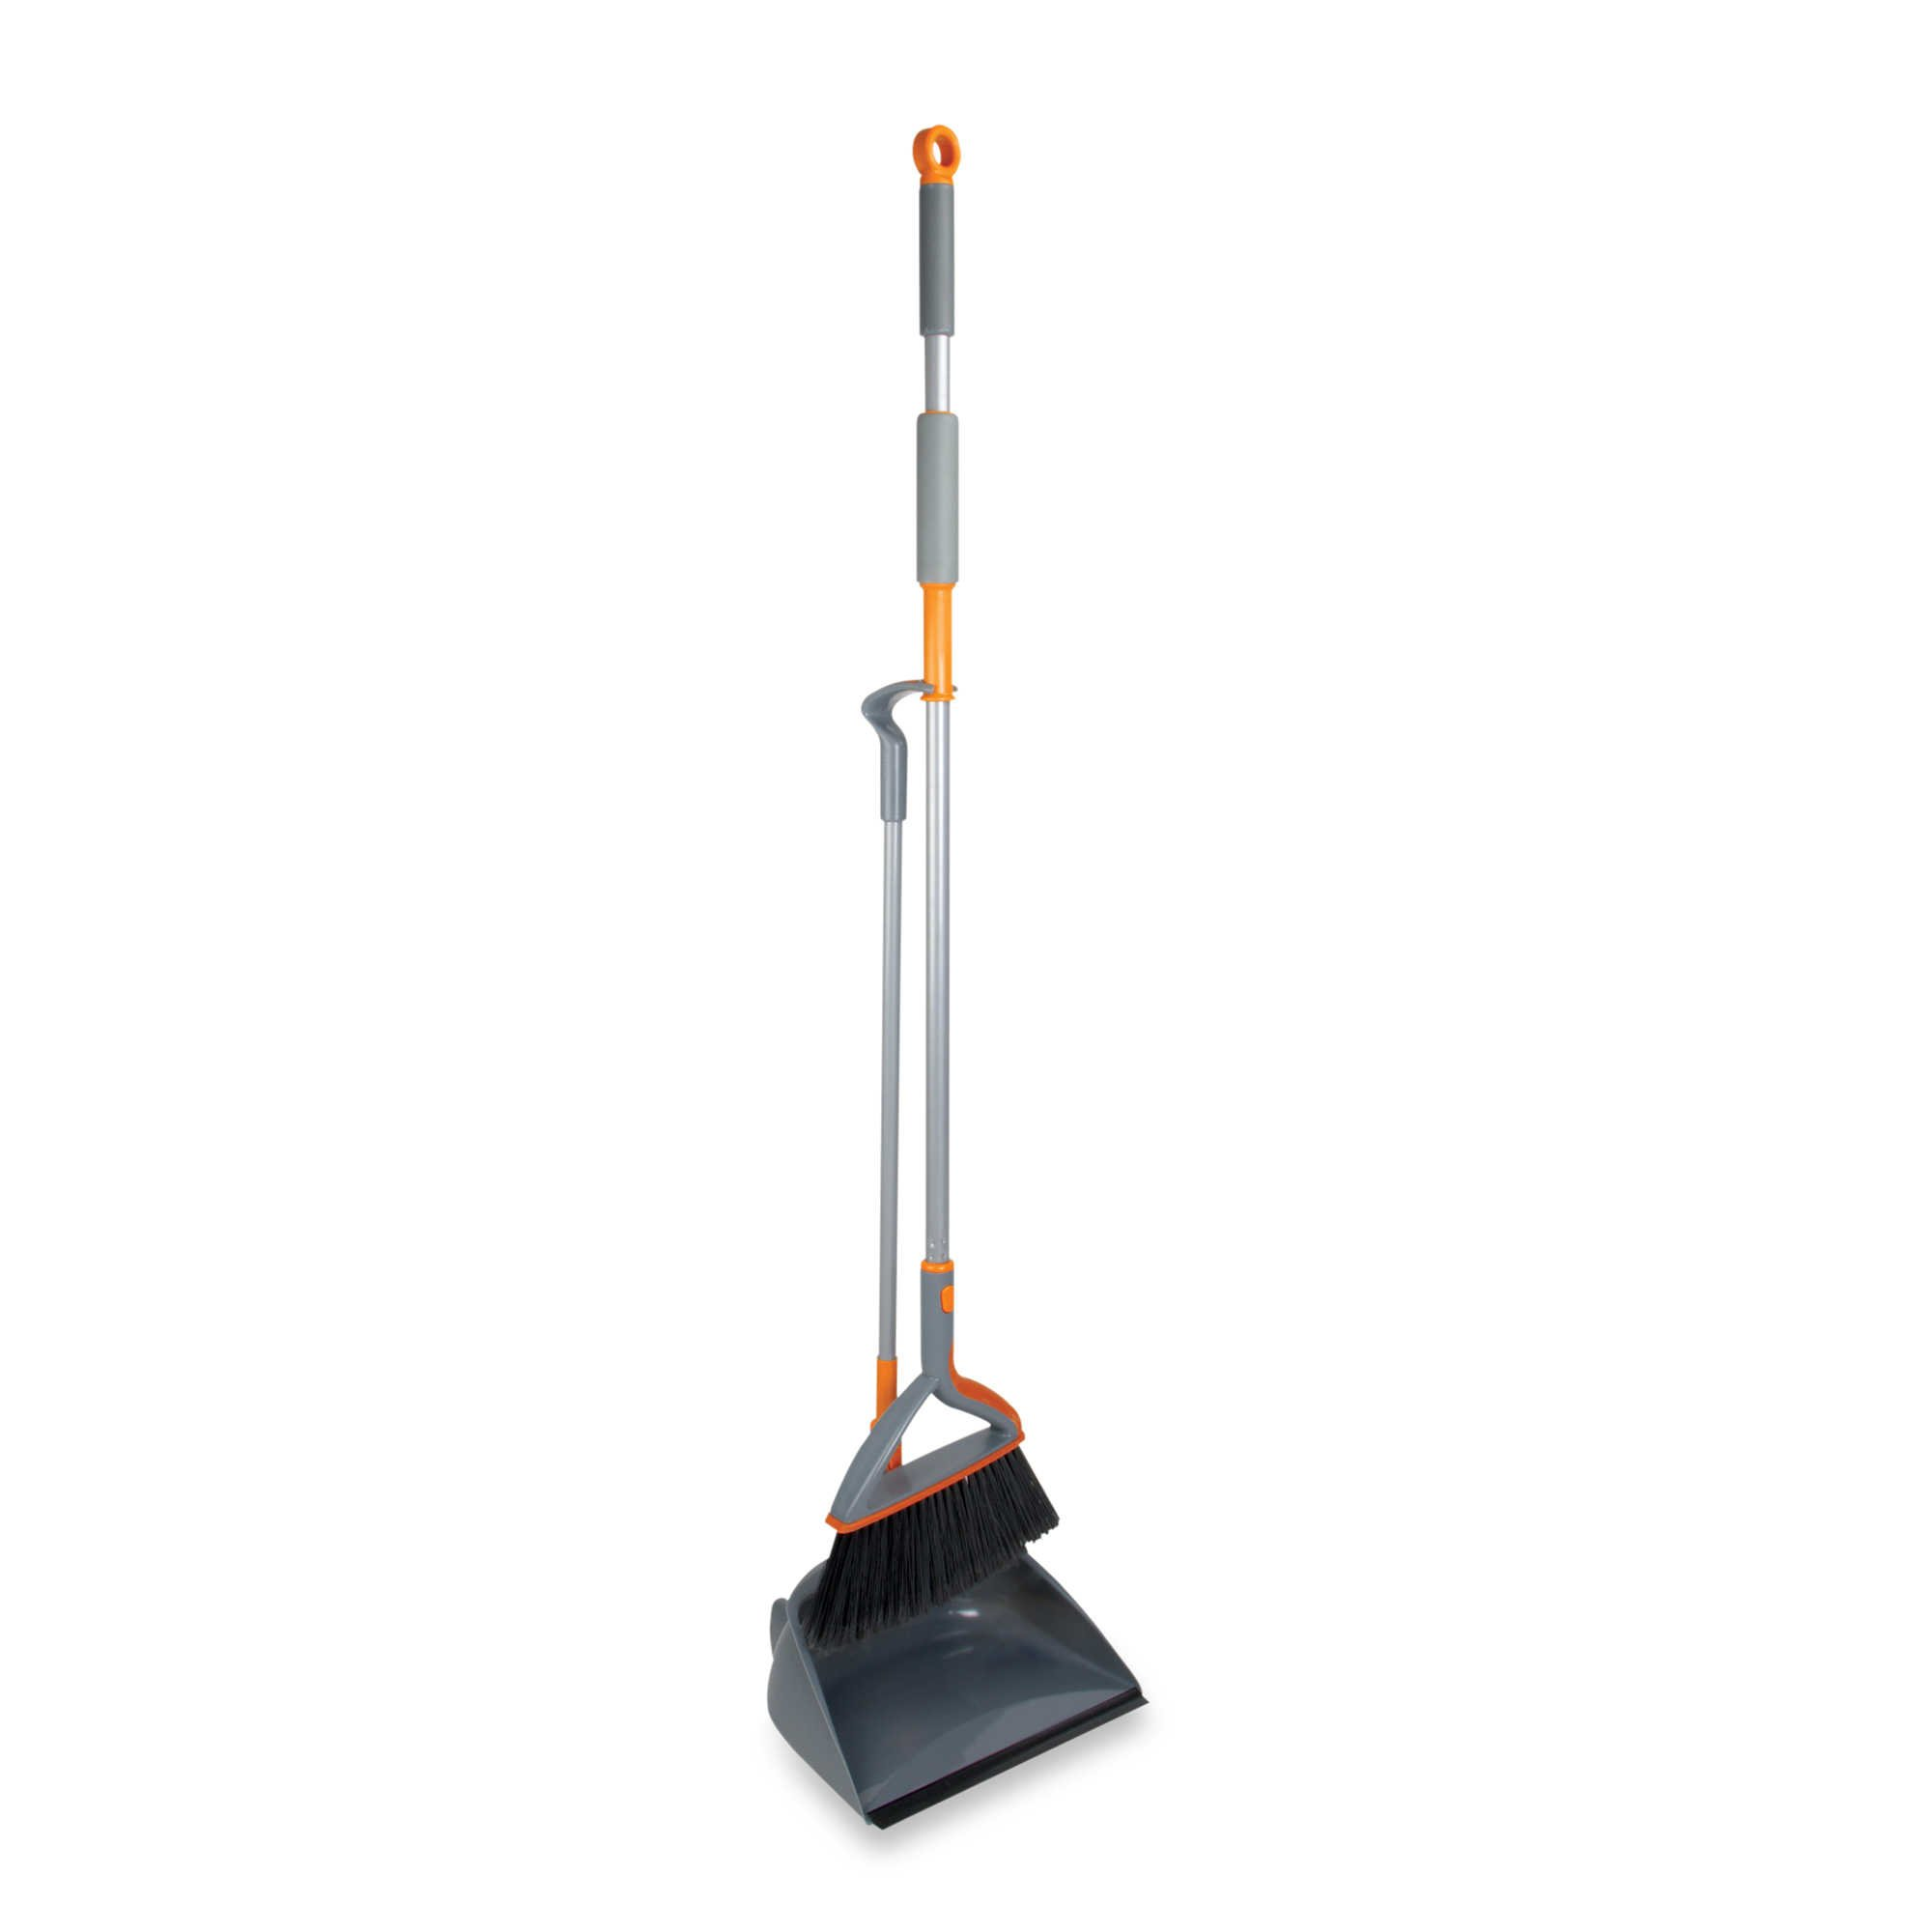 Casabella® Quick n' Easy™ Upright Sweep Set, Convenient, Easy to Store, Cleaning Makes Quick and Easy, in Colors Graphite/Orange